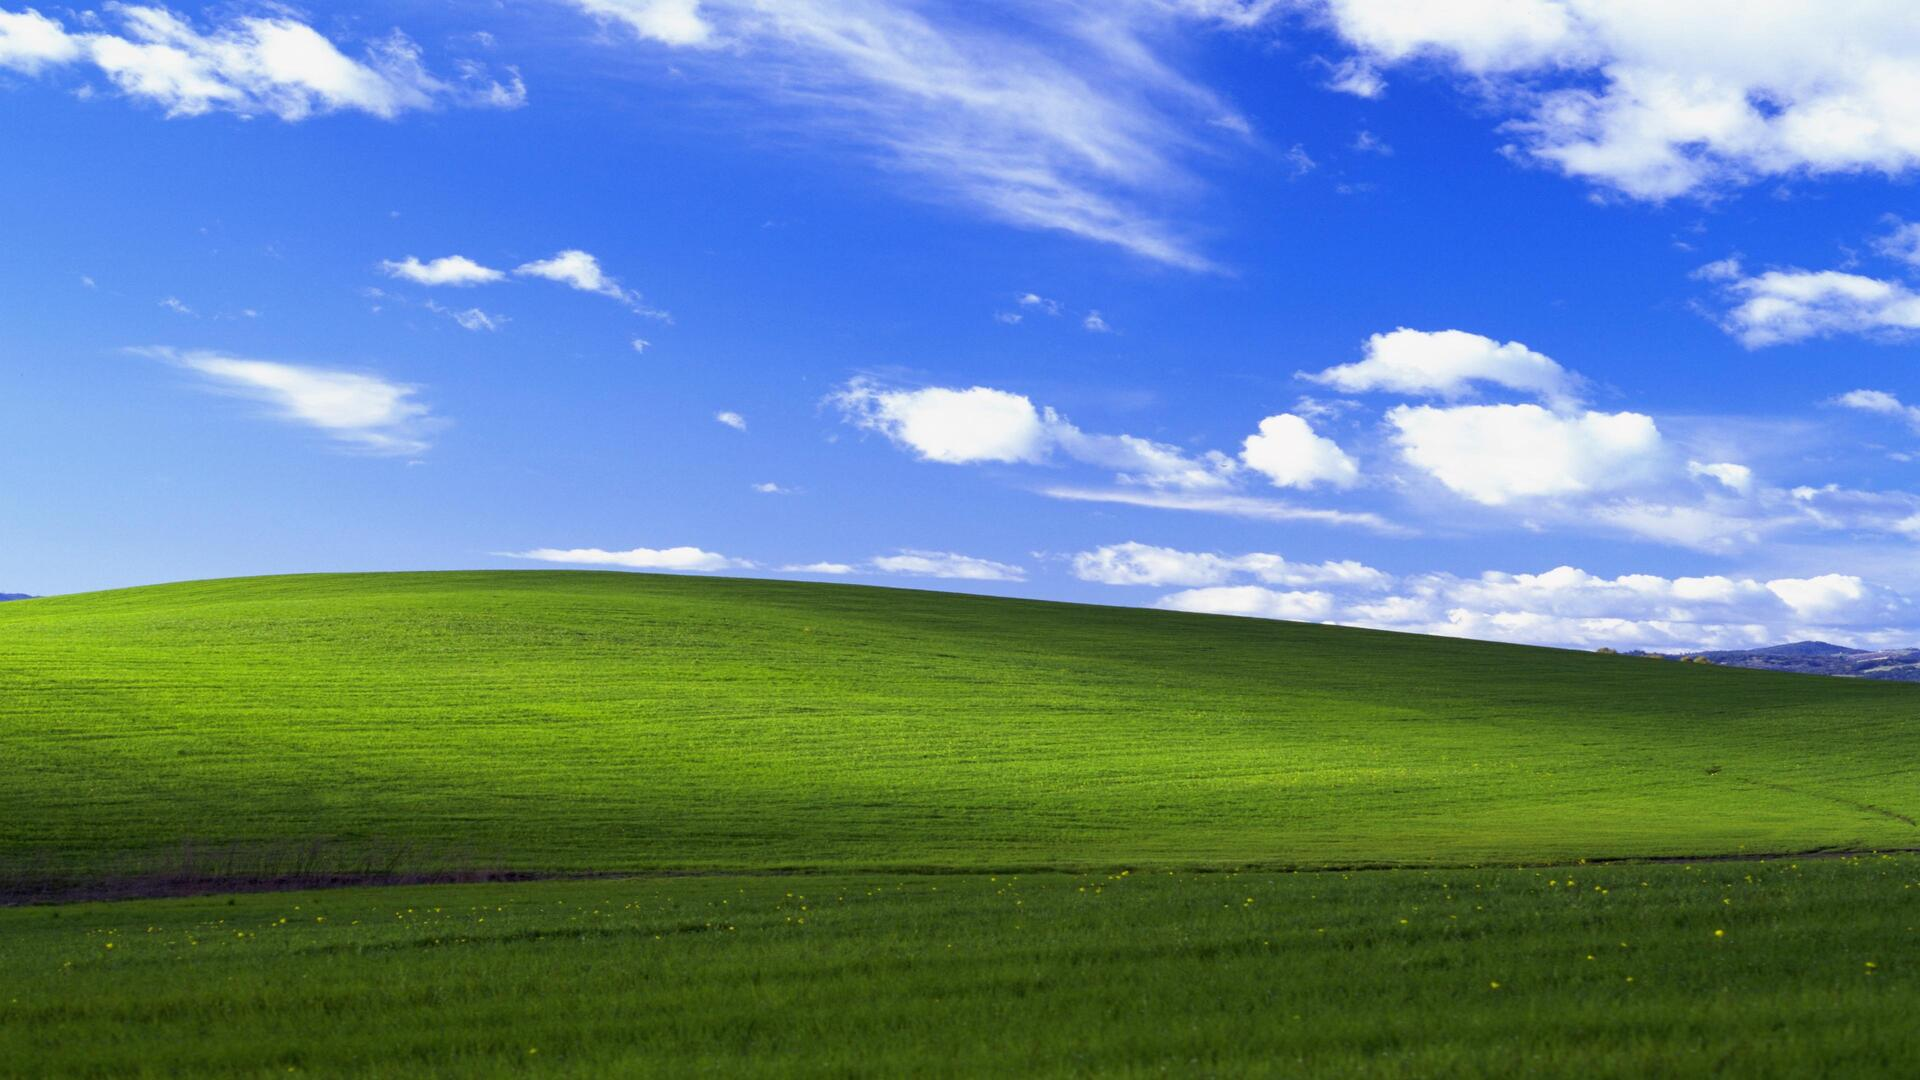 1920x1080 Windows Xp Bliss 4k Laptop Full HD 1080P HD 4k Wallpapers, Images, Backgrounds, Photos and Pictures